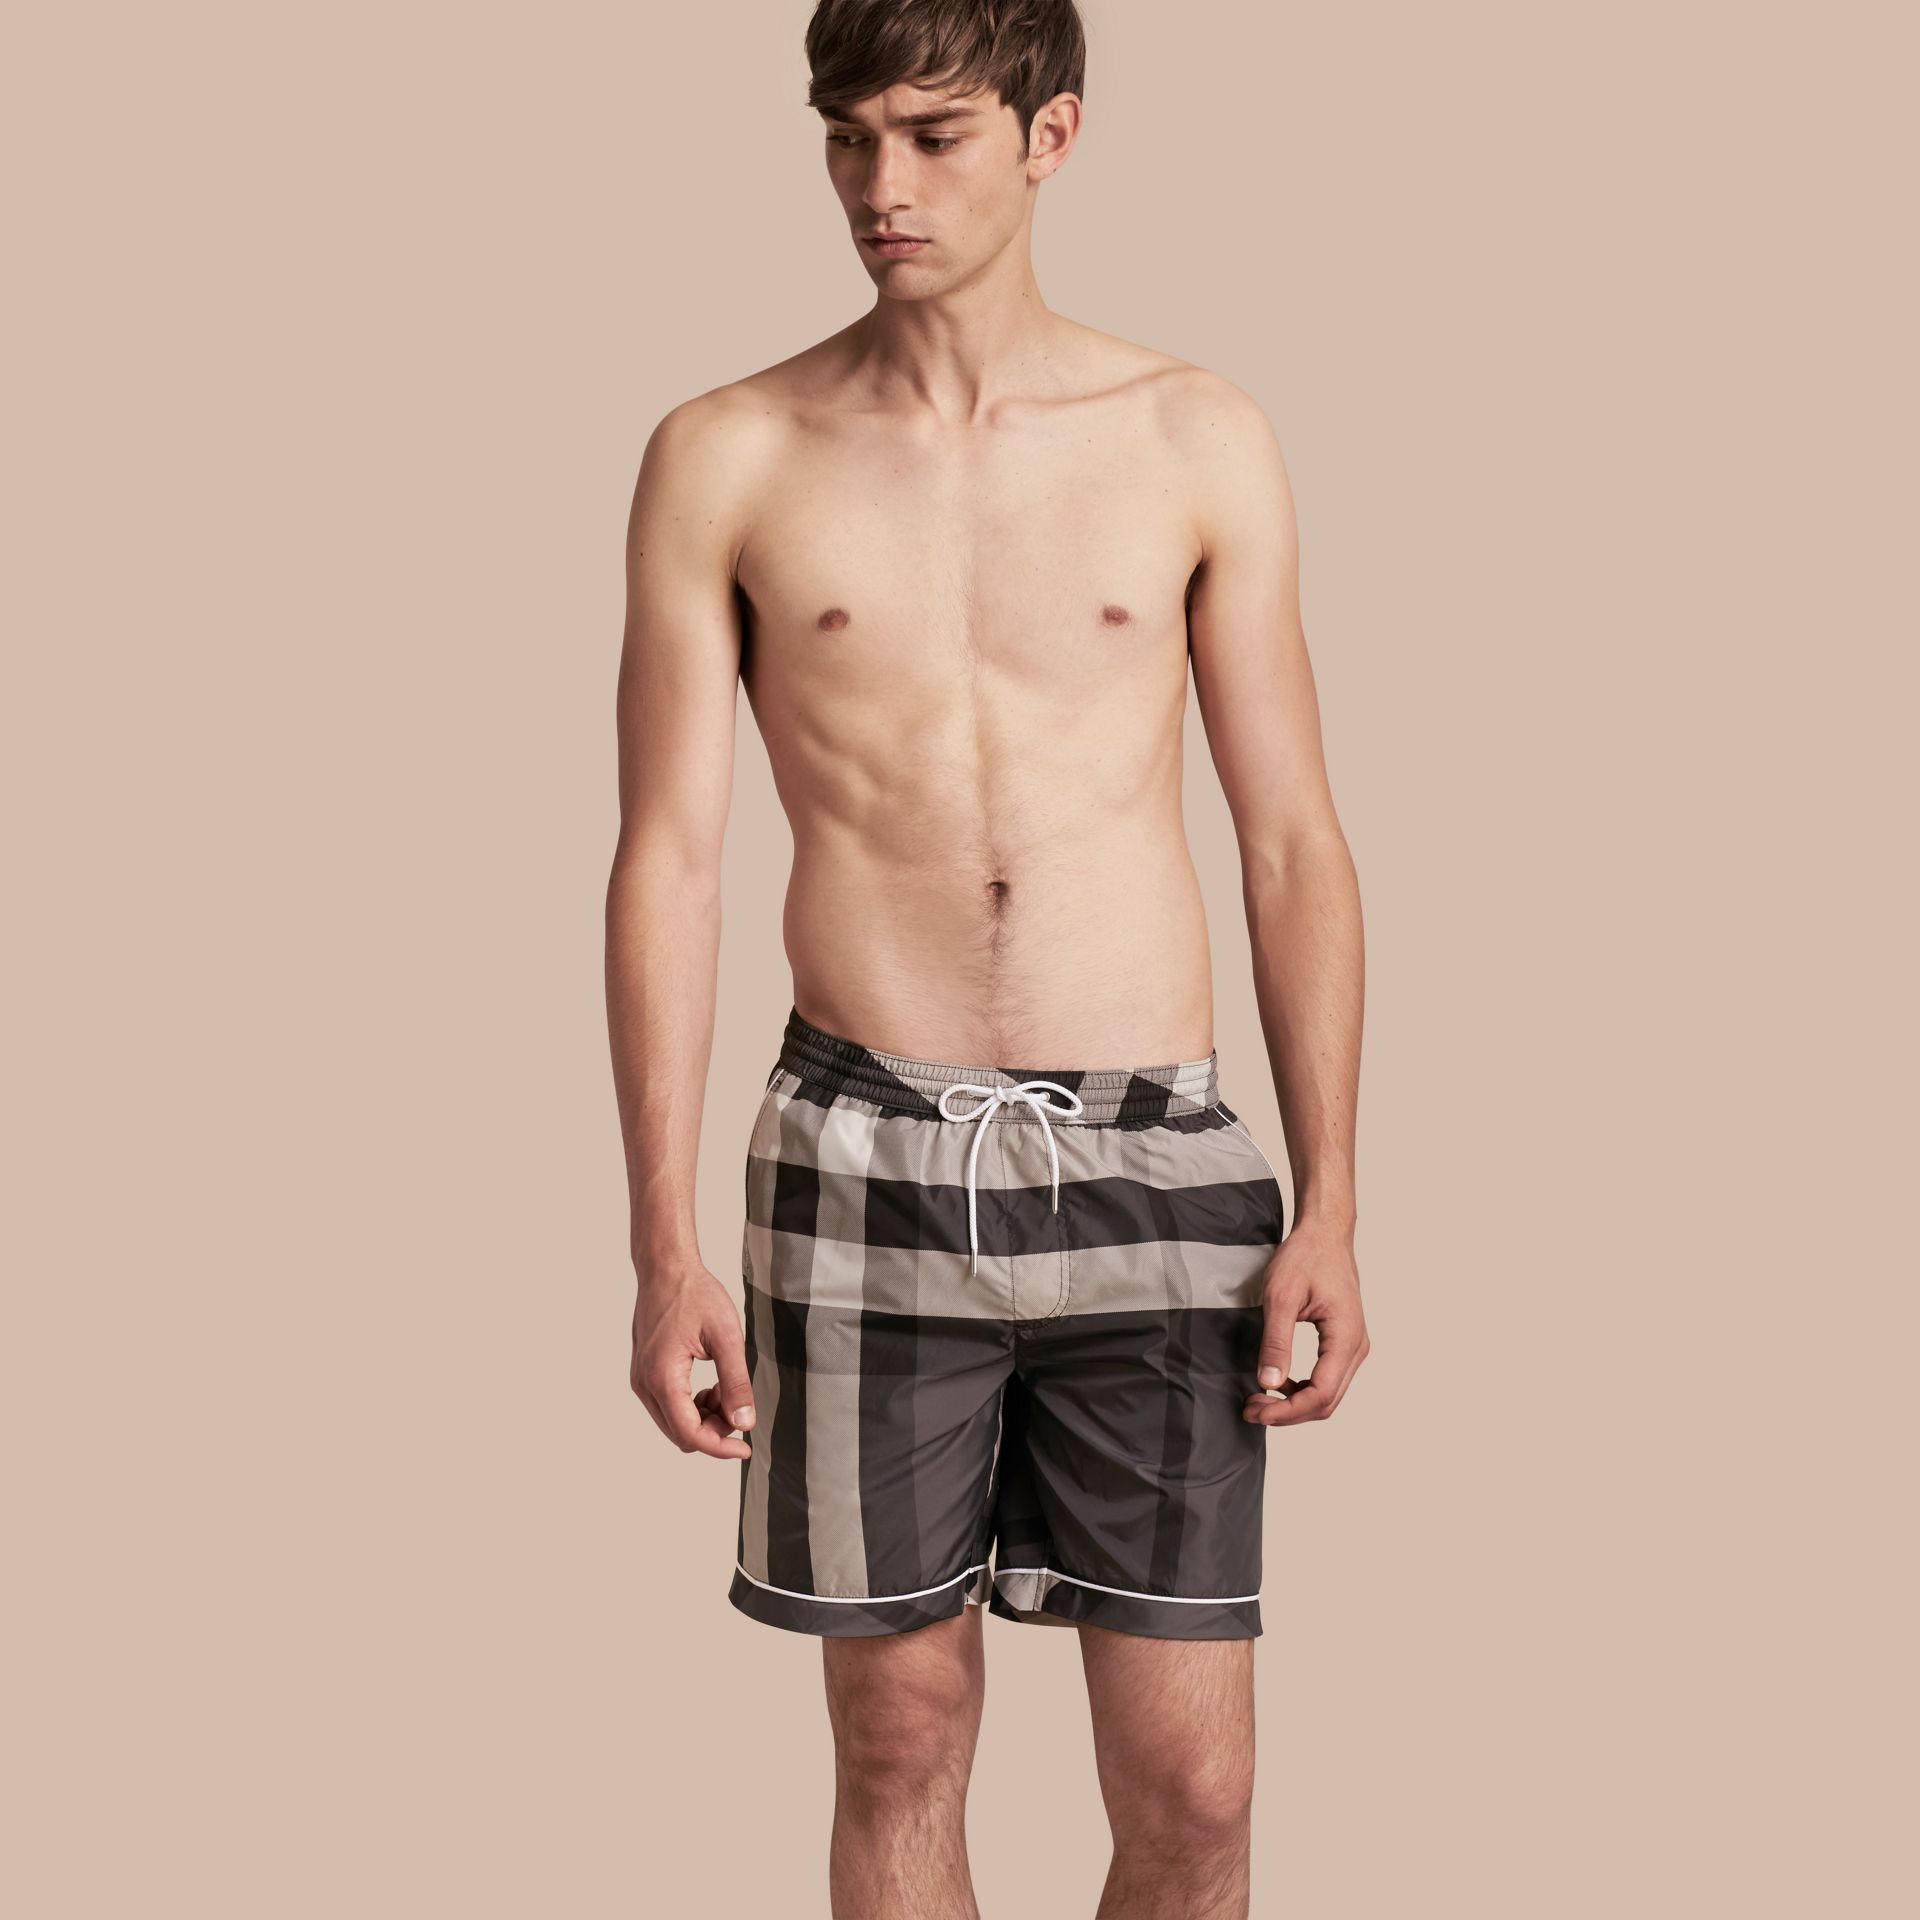 Charcoal Check Print Swim Shorts with Piping Detail Charcoal - gallery image 1